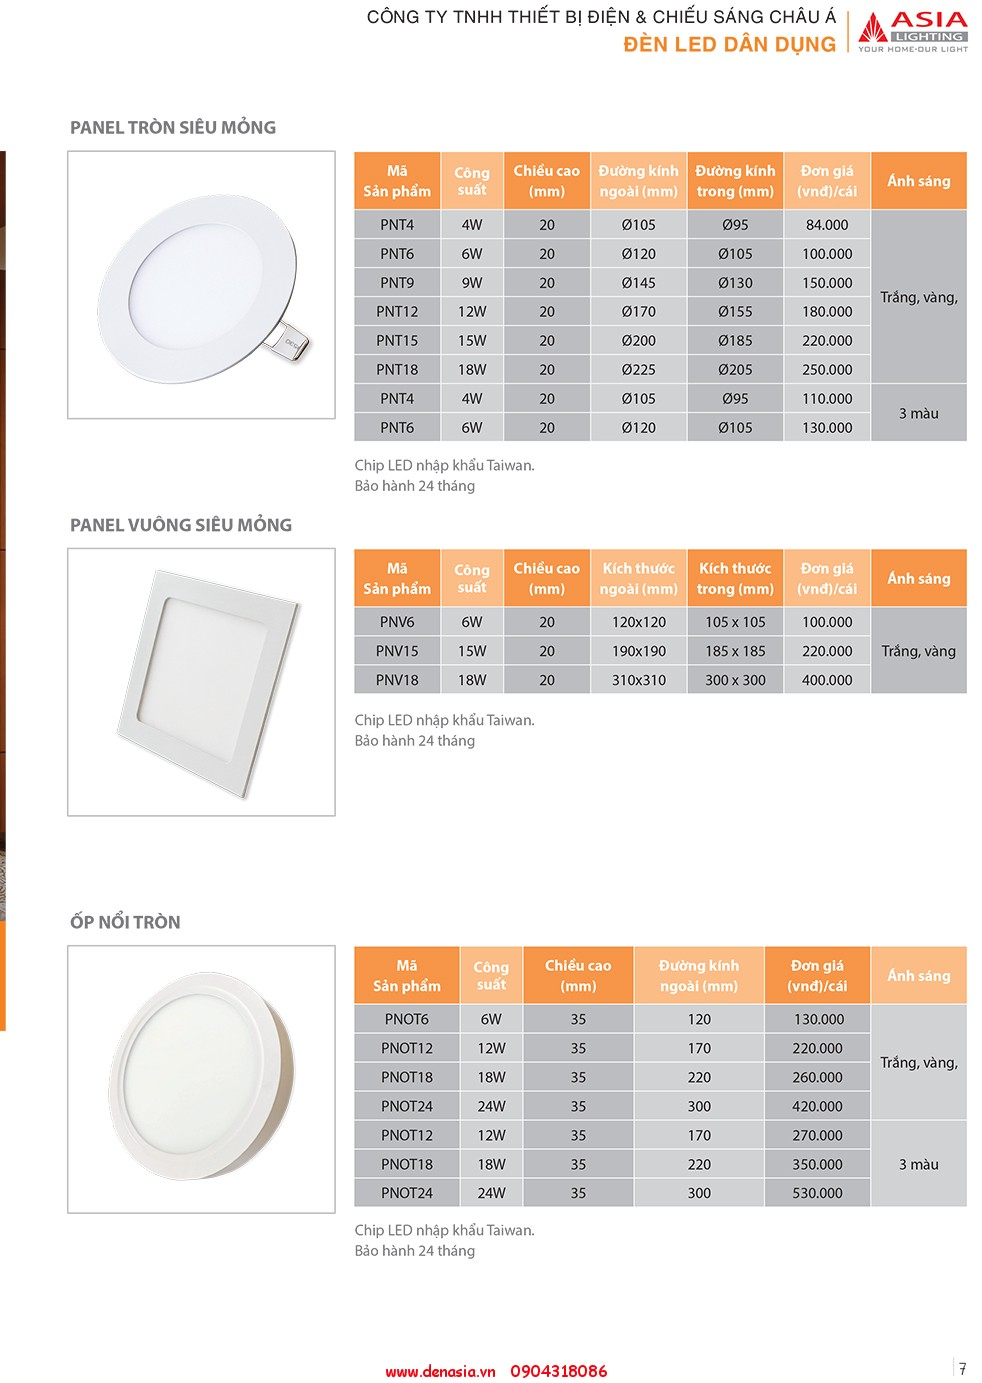 CATALOG - ĐÈN LED ASIA-7